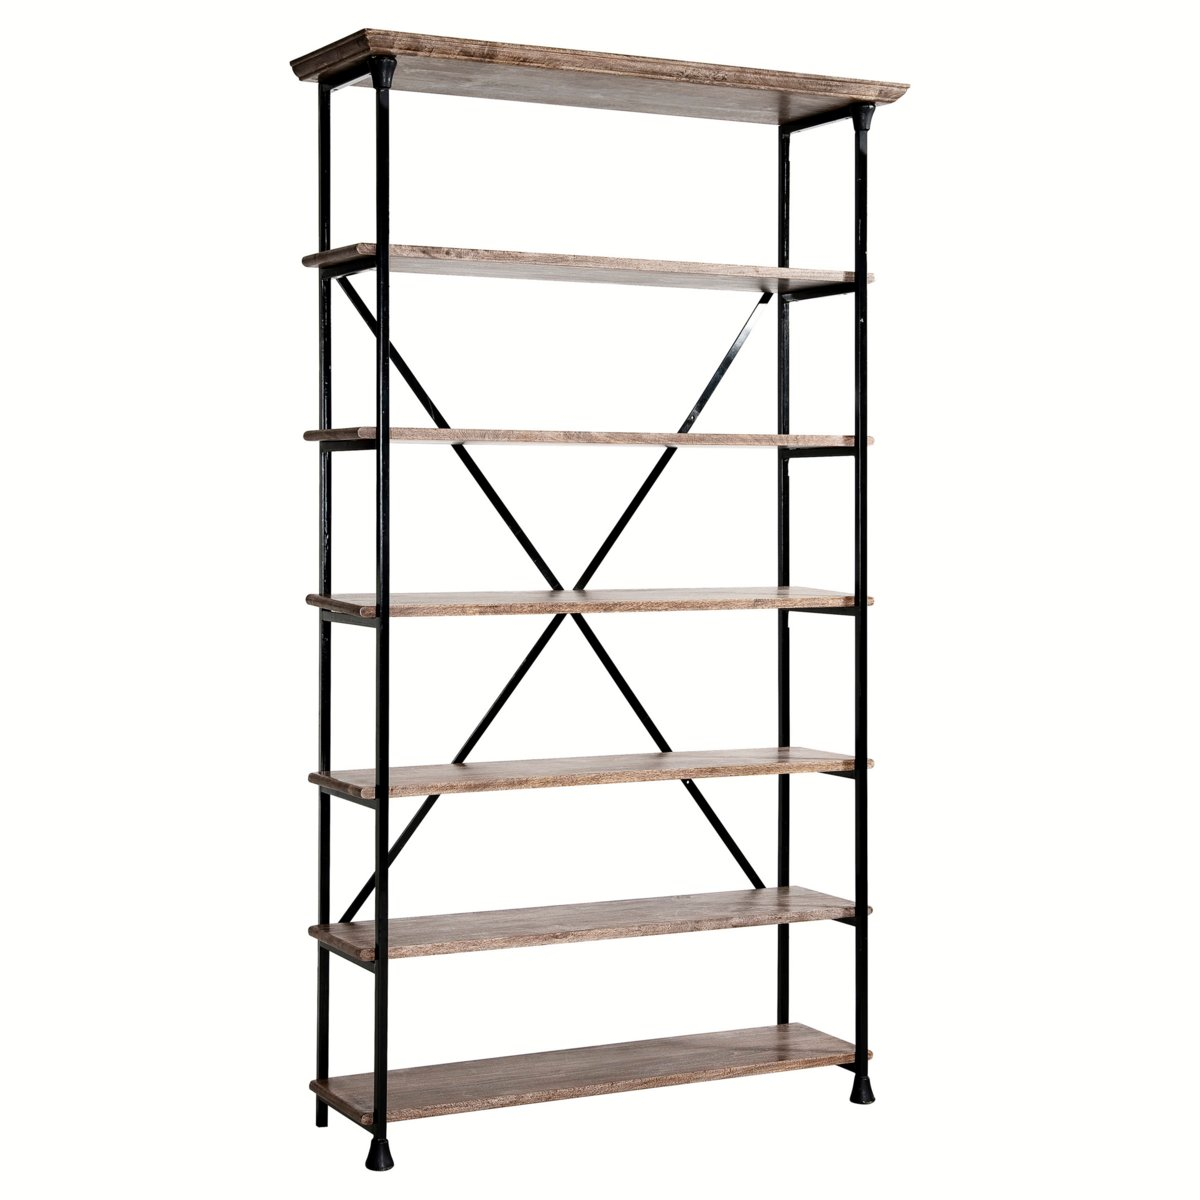 Biblioth que am pm etag re bois et m tal koncept am pm ventes pas - Etagere metal pas cher ...